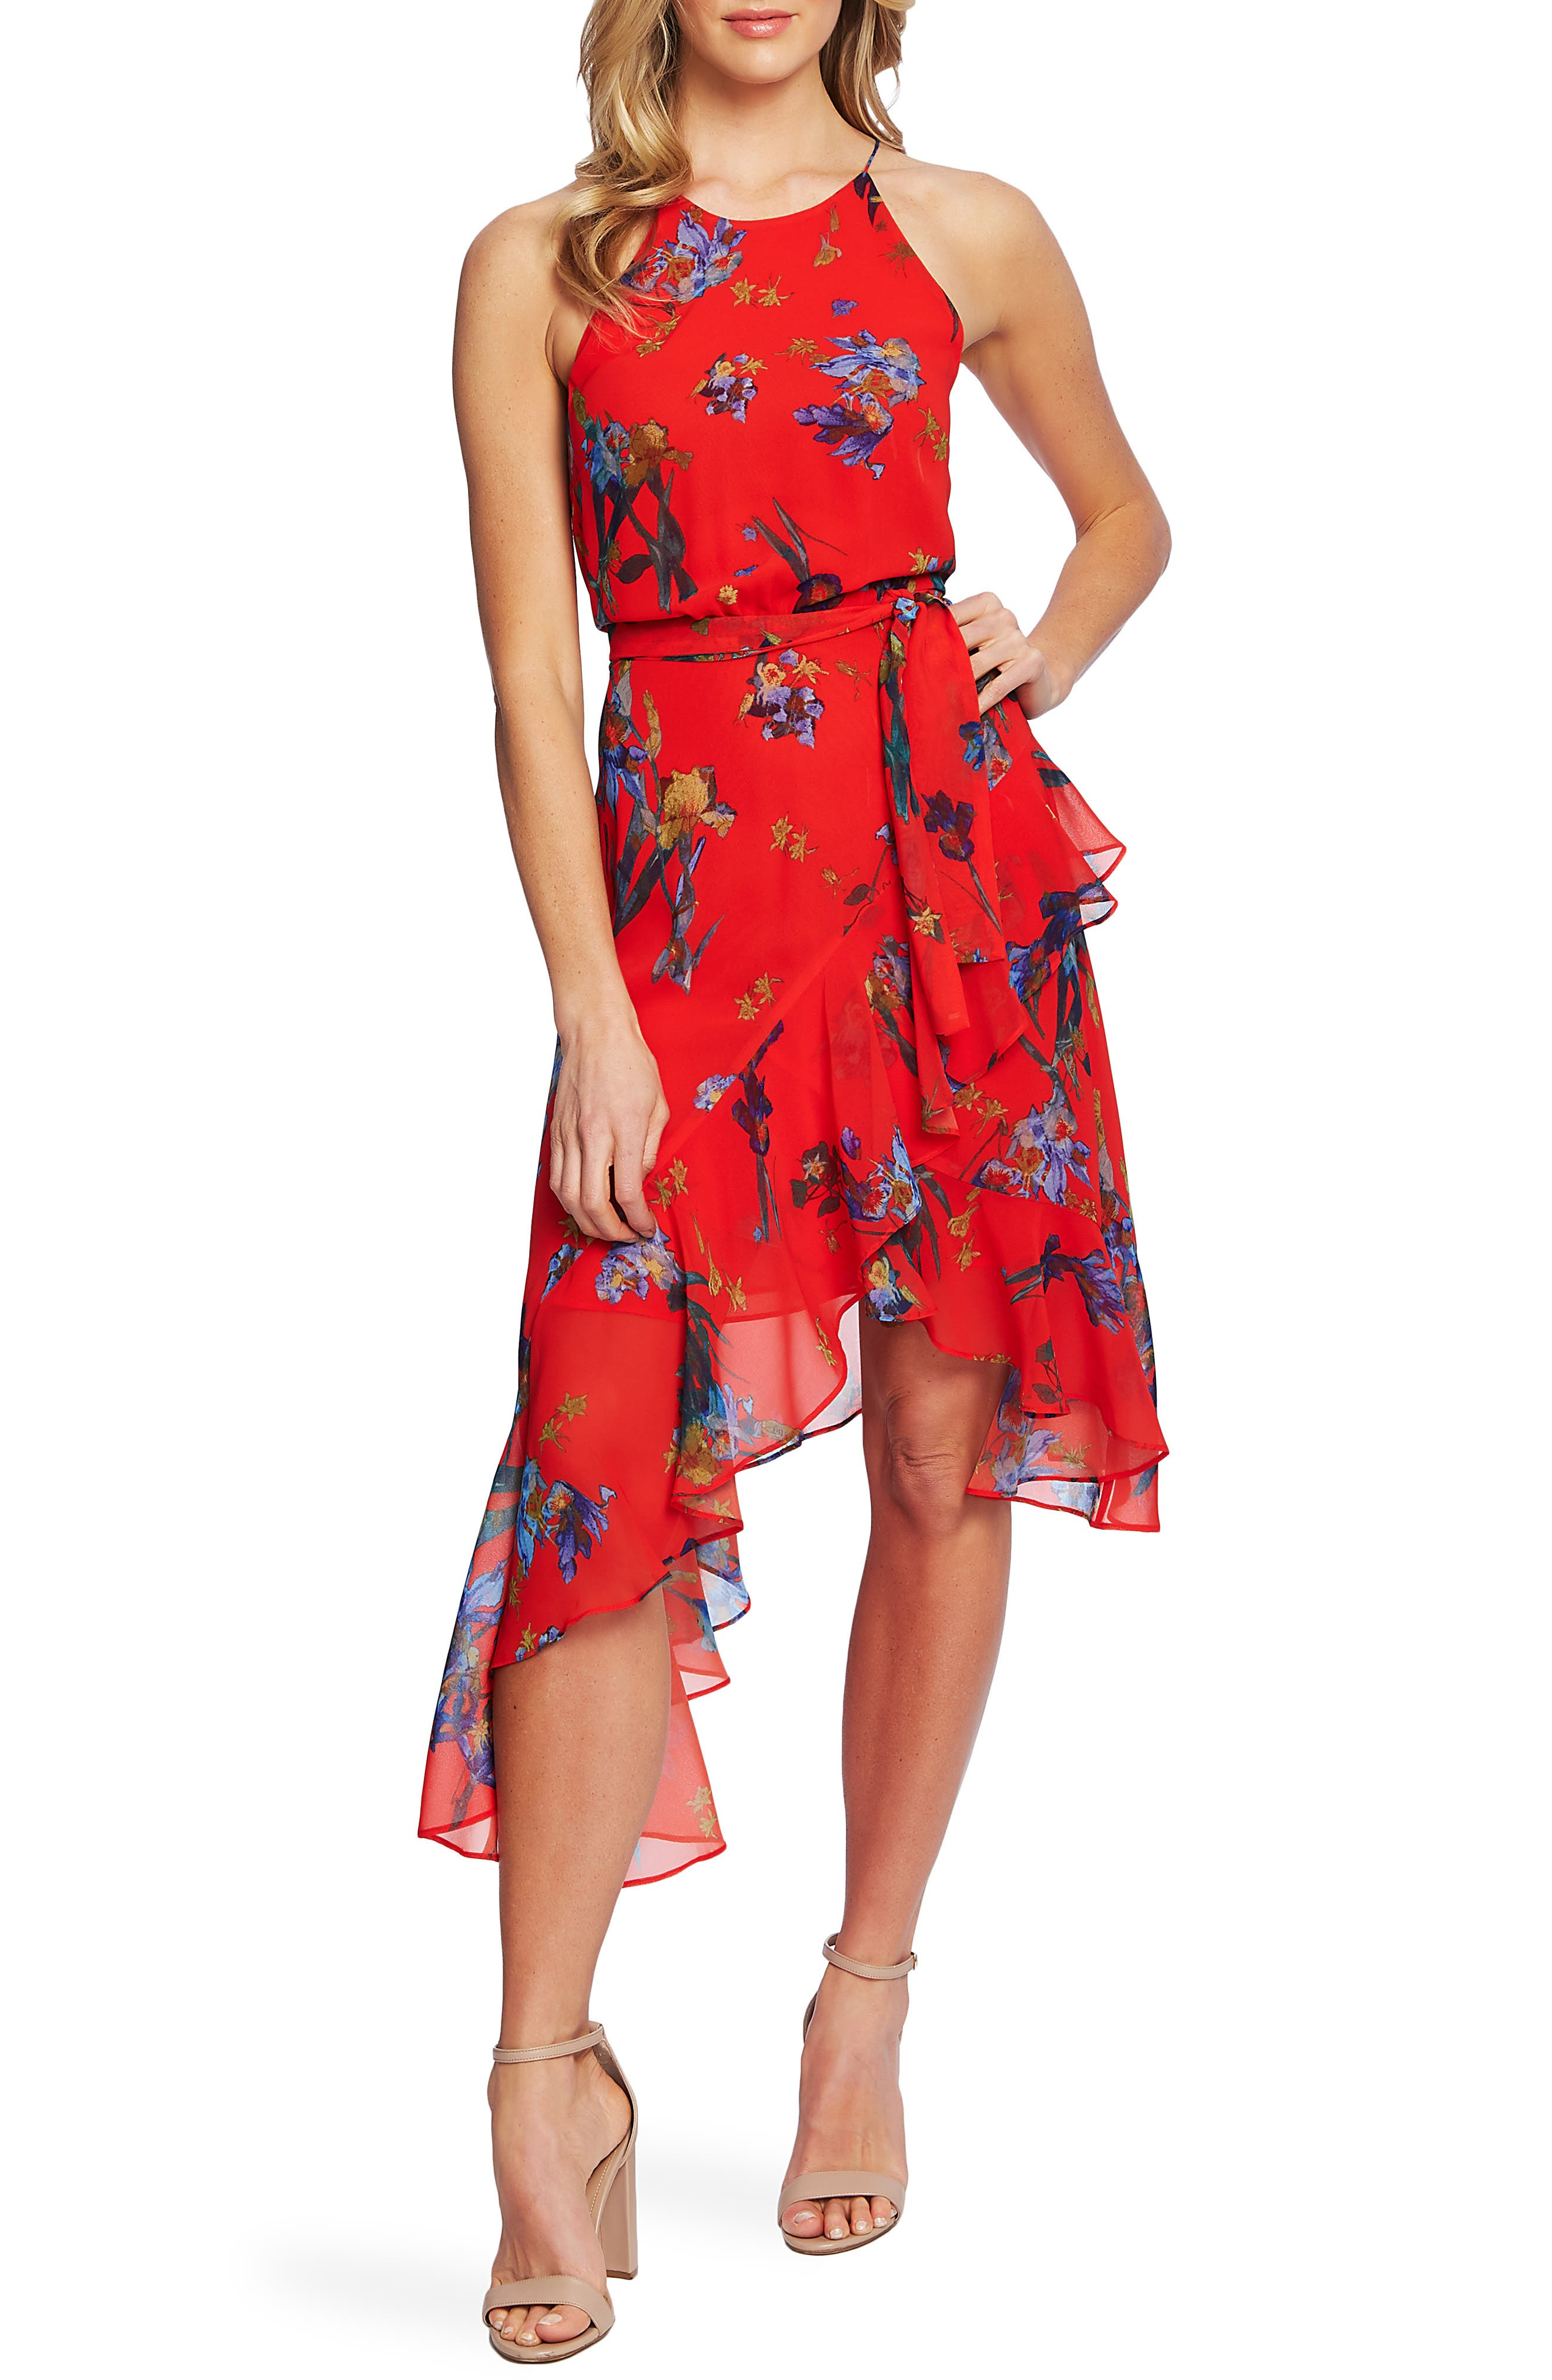 Weddings & Events One Shoulder Red Chiffon Short Cocktail Party Dresses 2019 New Simple Party Gowns Asymmetrical Skirt Above Knee Cocktail Dresses Evident Effect